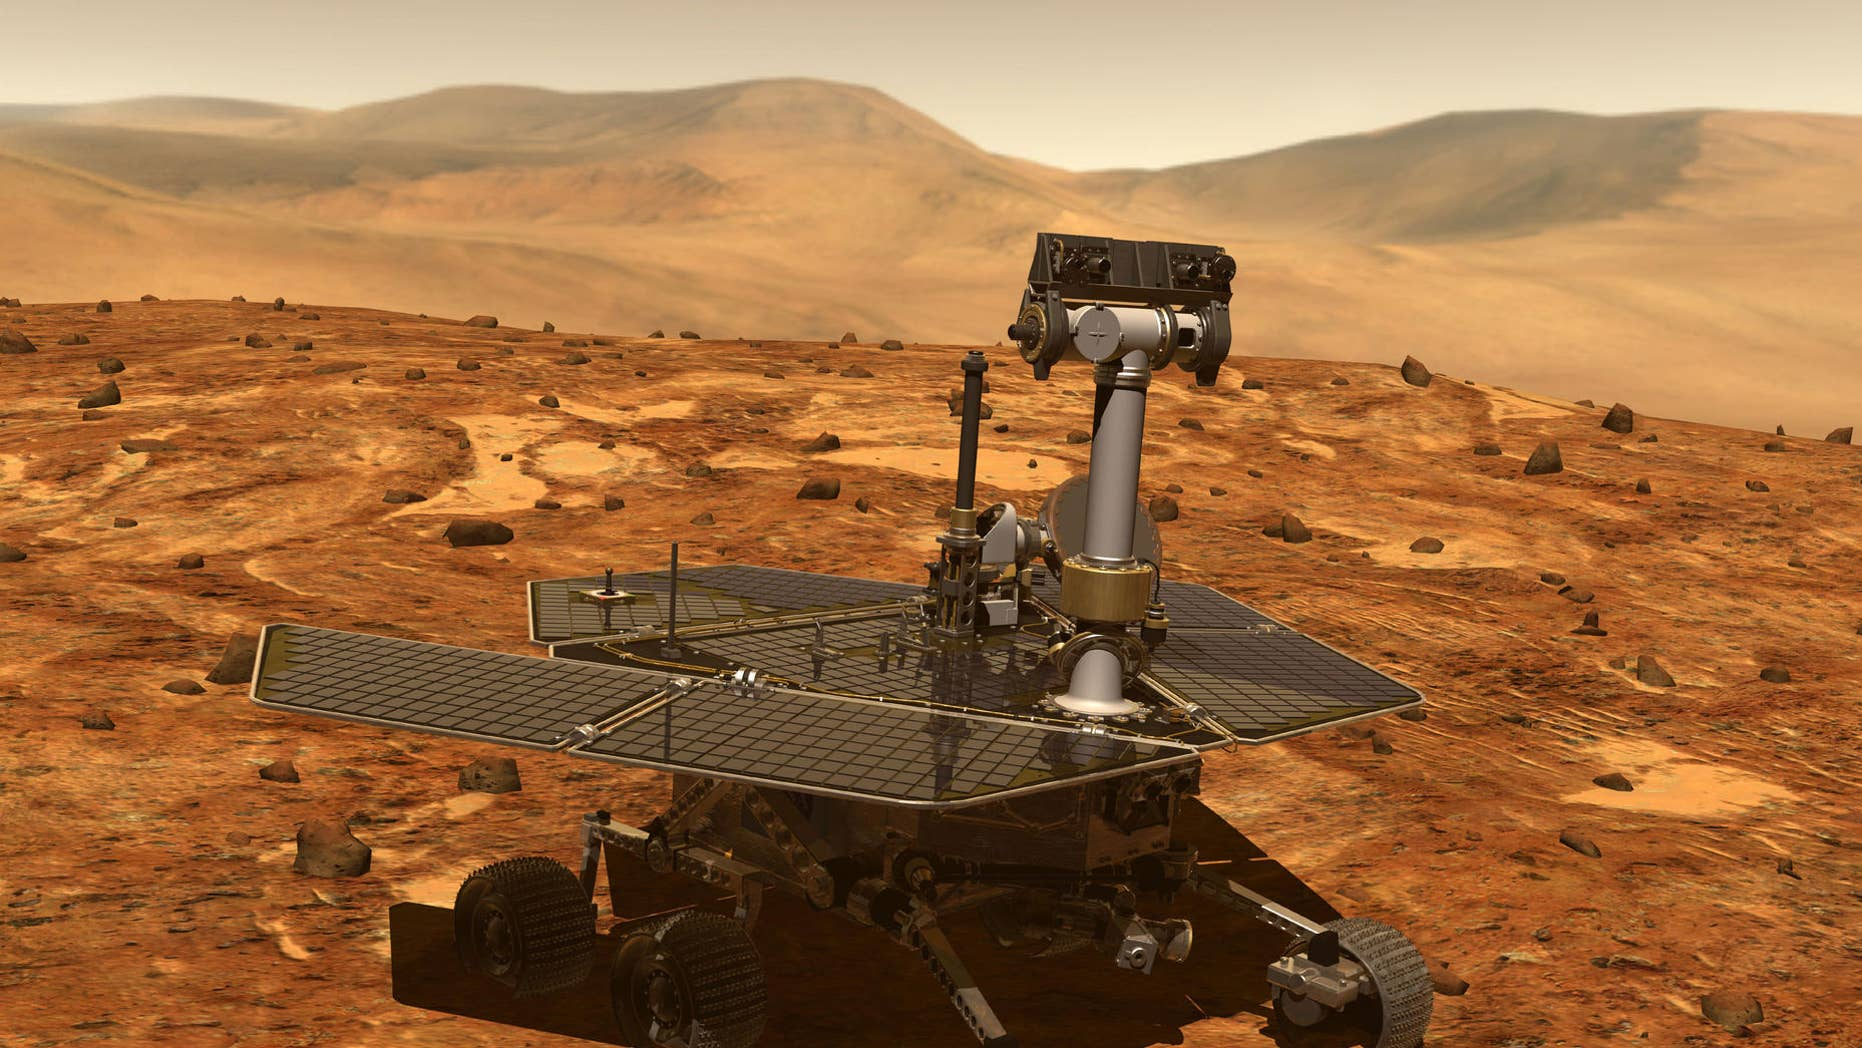 Curiosity snaps a selfie before heading off to new adventures